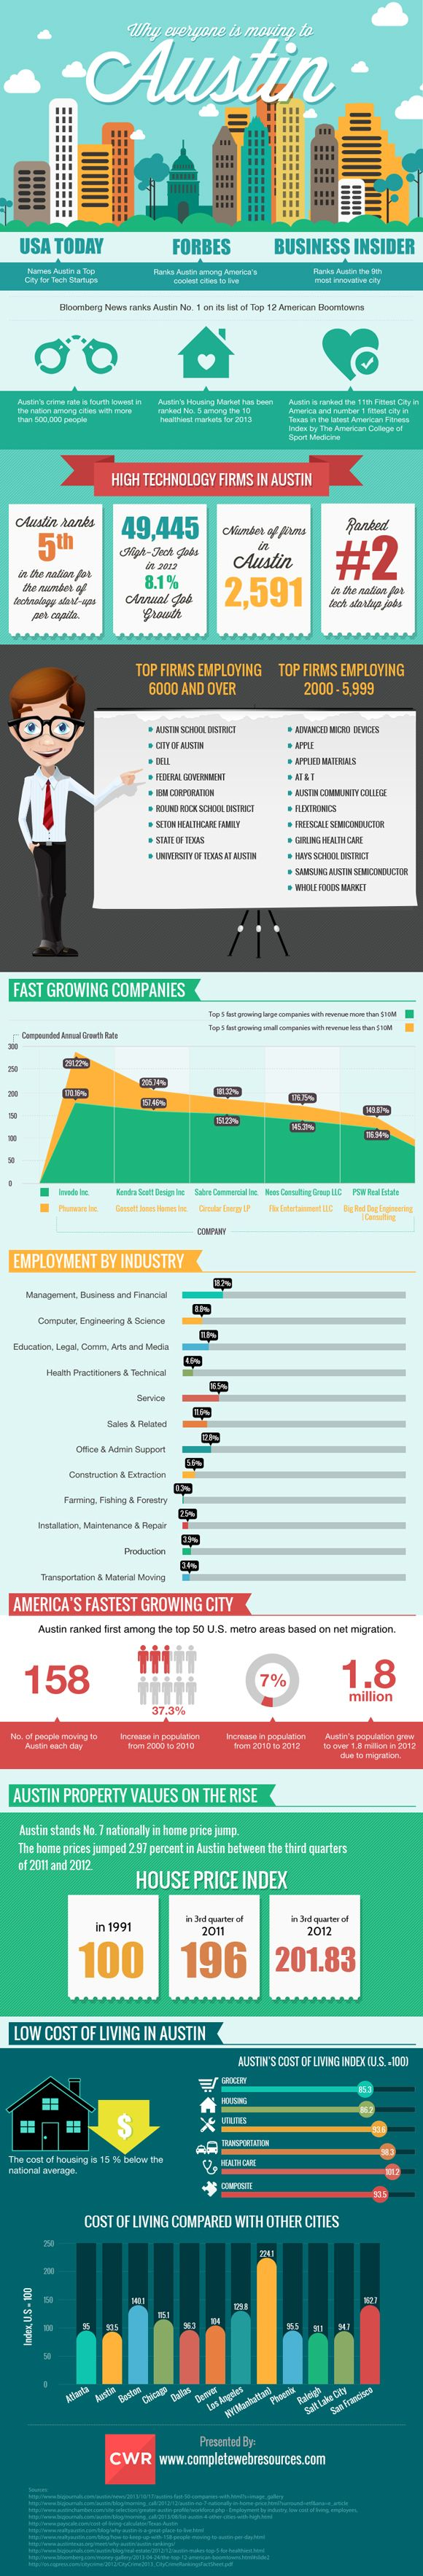 Austin Texas, fastest growing city in the US  #Austin #infographic